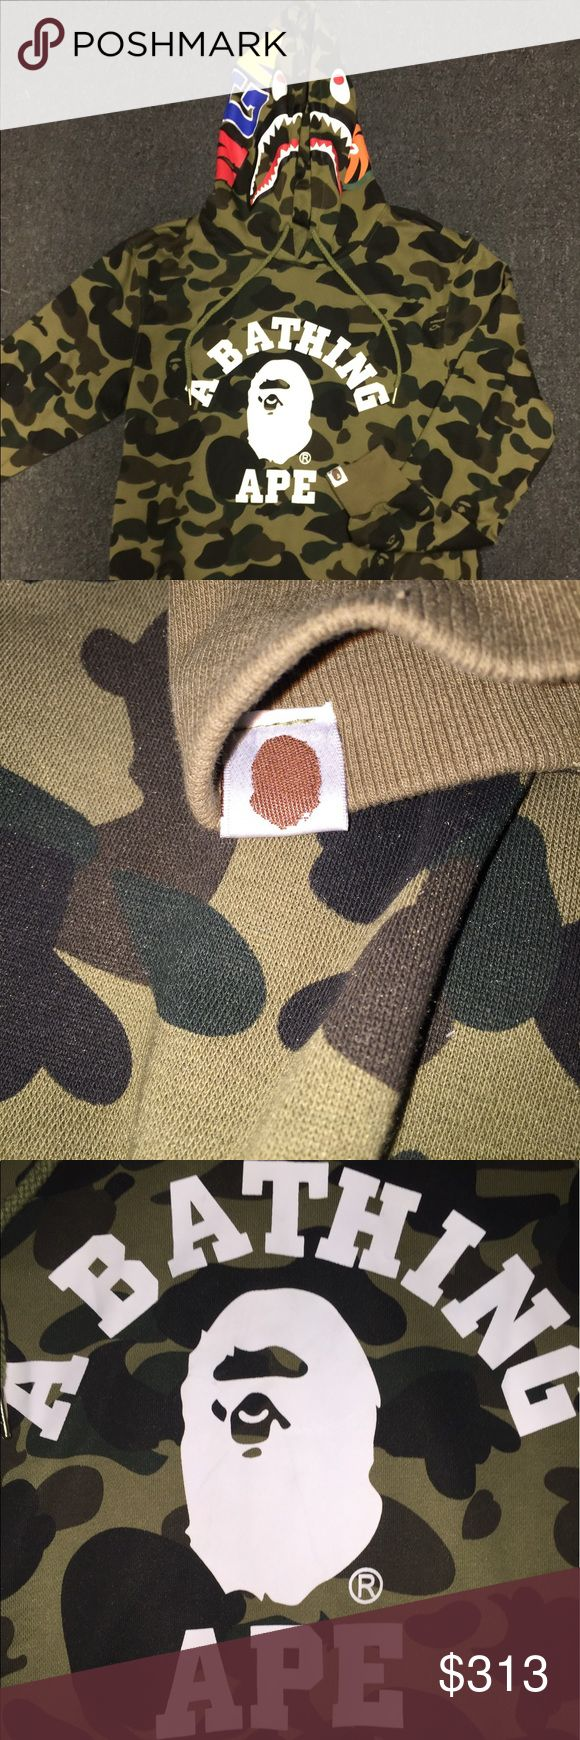 Bape OG 1st Camo Shark Pullover Hoodie Slight Cracking On Right Side Of Ape Head Die To The Way It Was Folded In Storage Other Than That It's In New Condition. Tagged XL But Fits Like A Large . Has Side Pockets Bape Sweaters